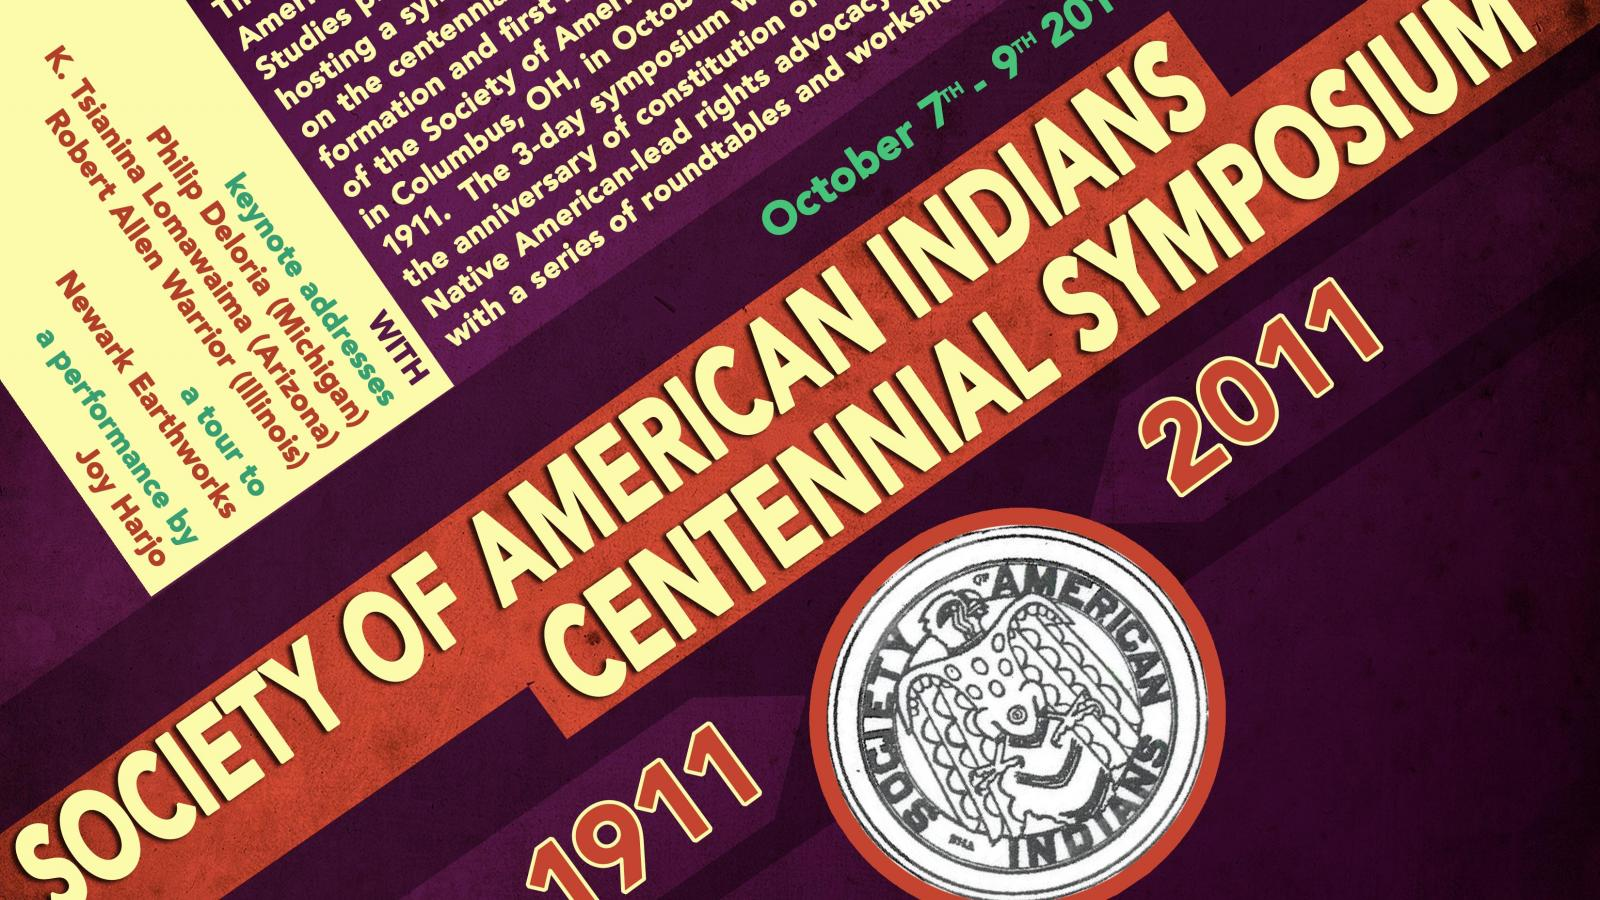 The SAI Centennial Flyer